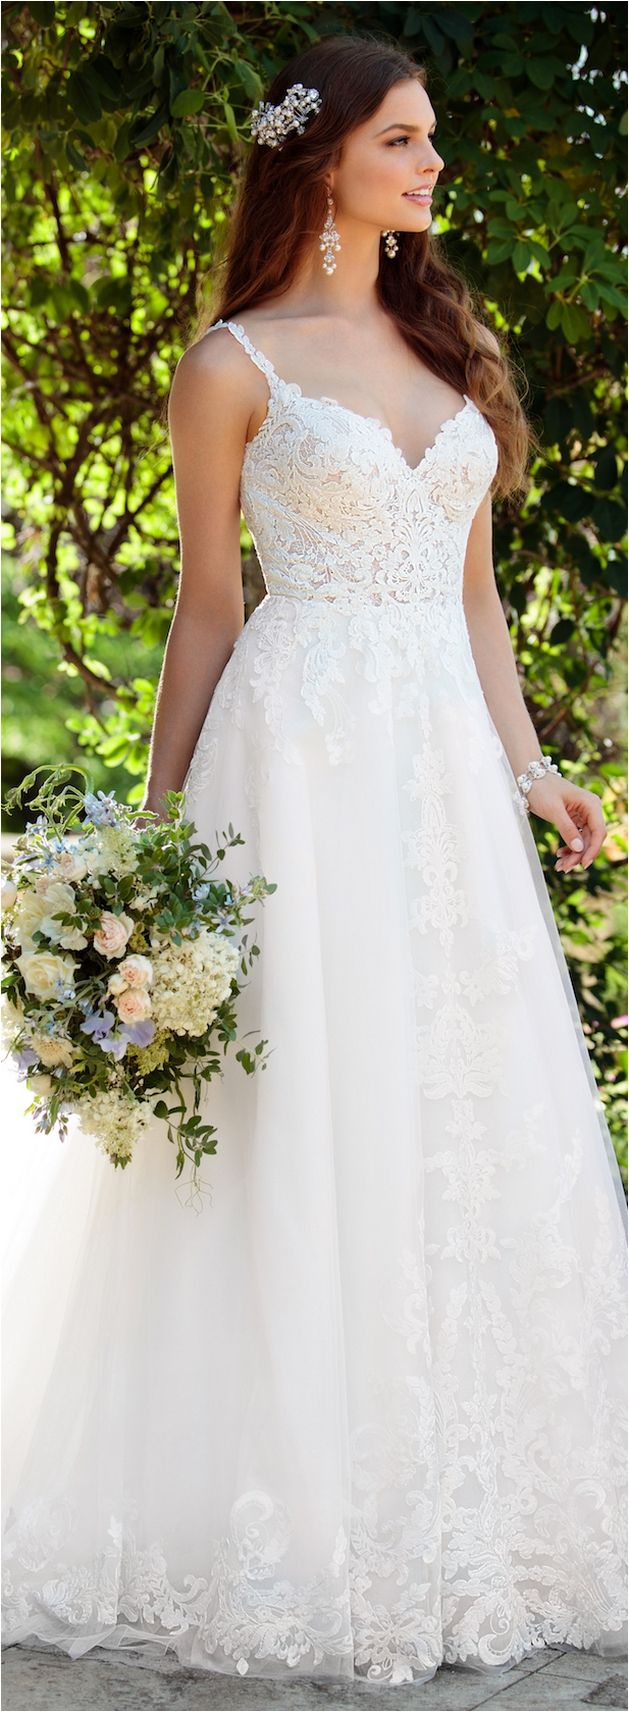 new spring summer wedding dresses trends and ideas